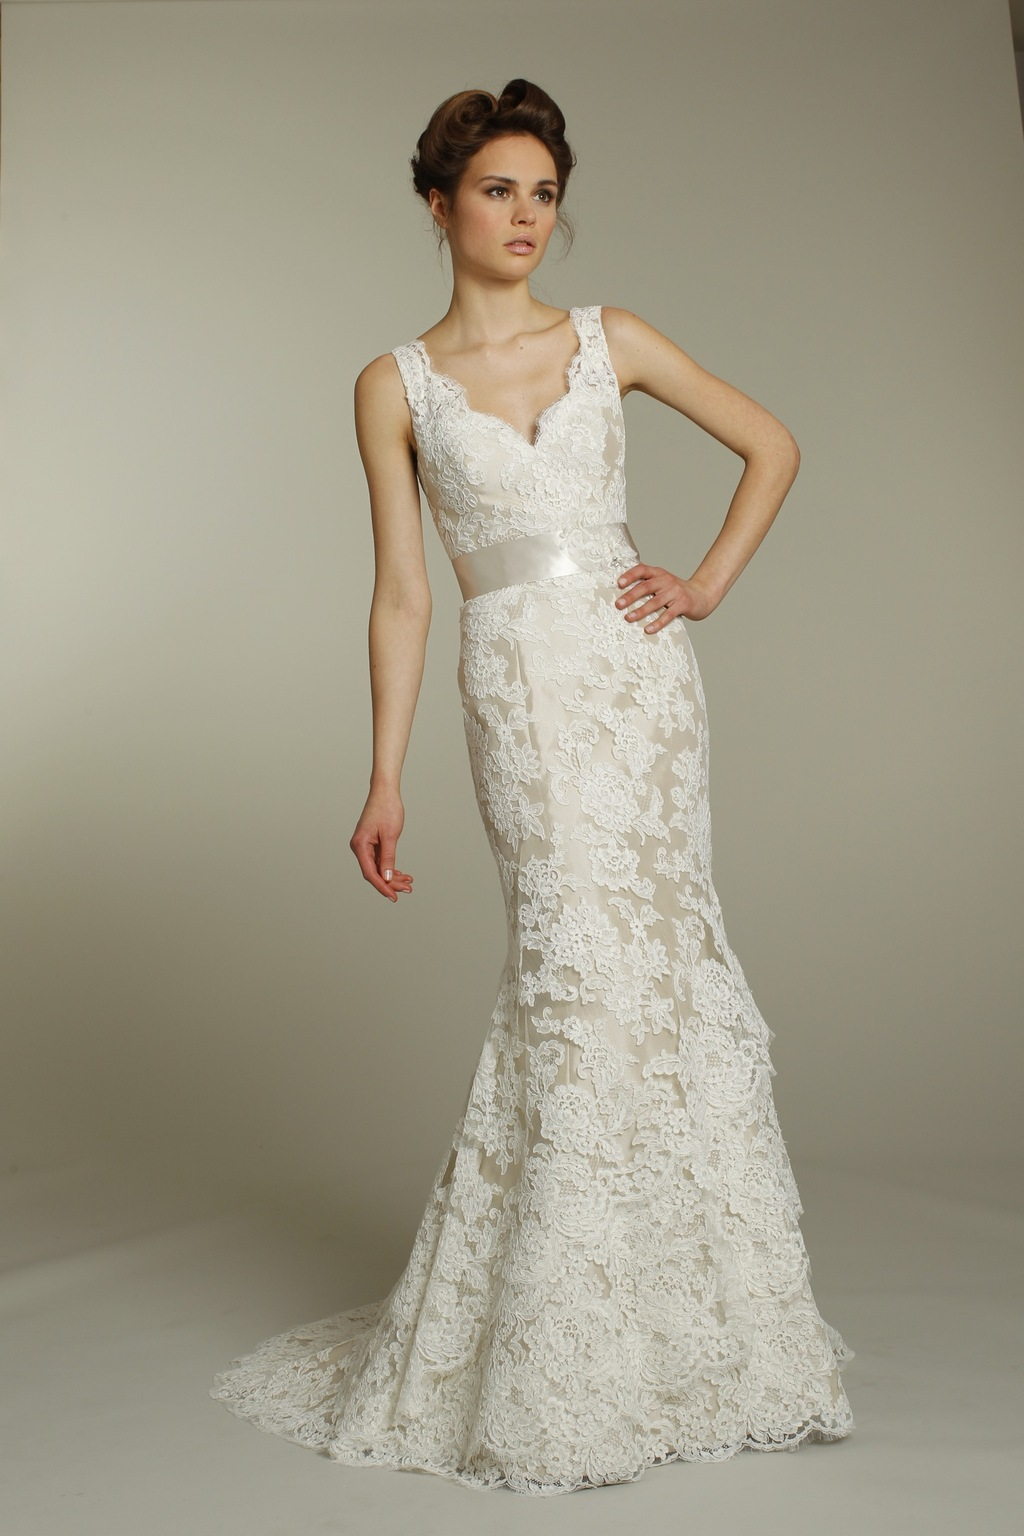 Romantic ivory v-neck lace wedding dress with champagne ribbon sash